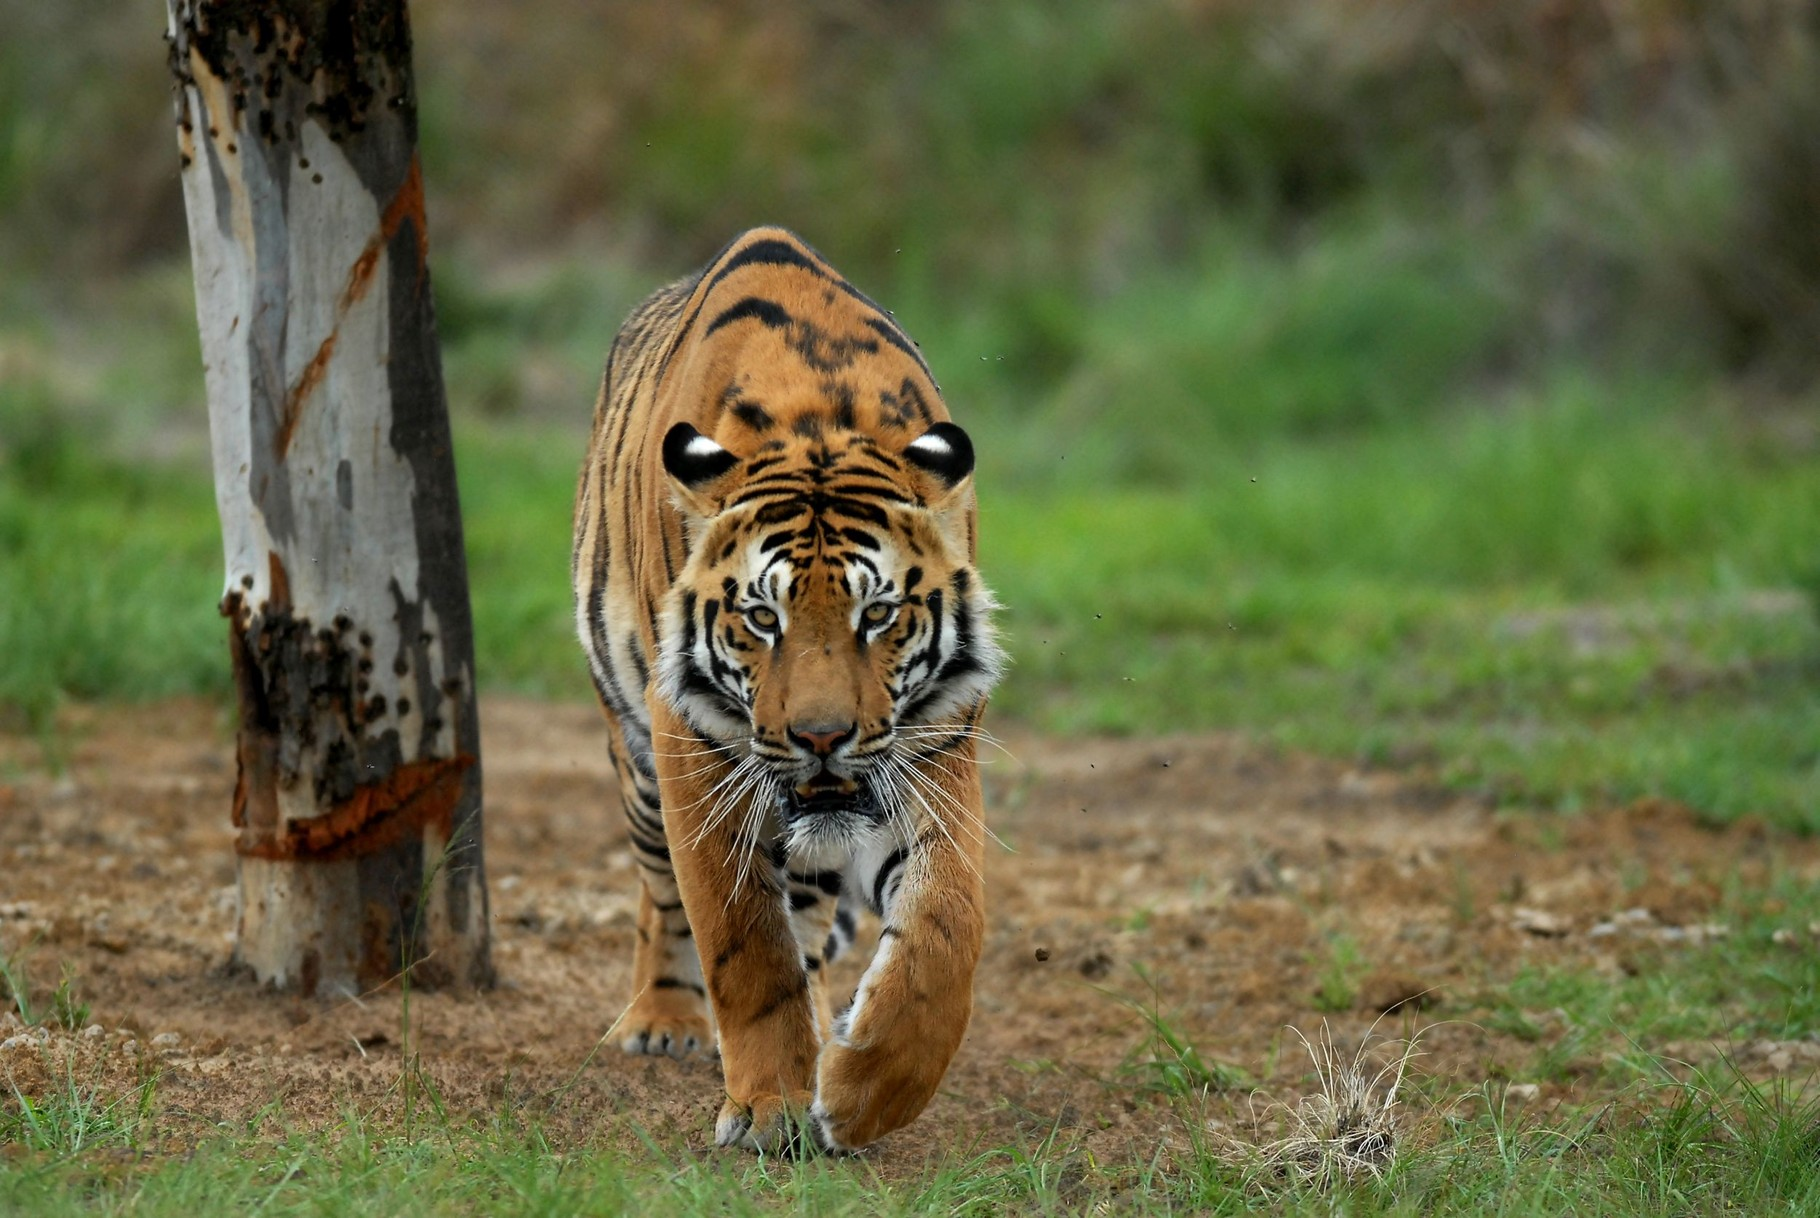 Moving tiger in LIONSROCK, the FOUR PAWS Big Cat Sanctuary in South Africa © VIER PFOTEN | Mihai Vasile